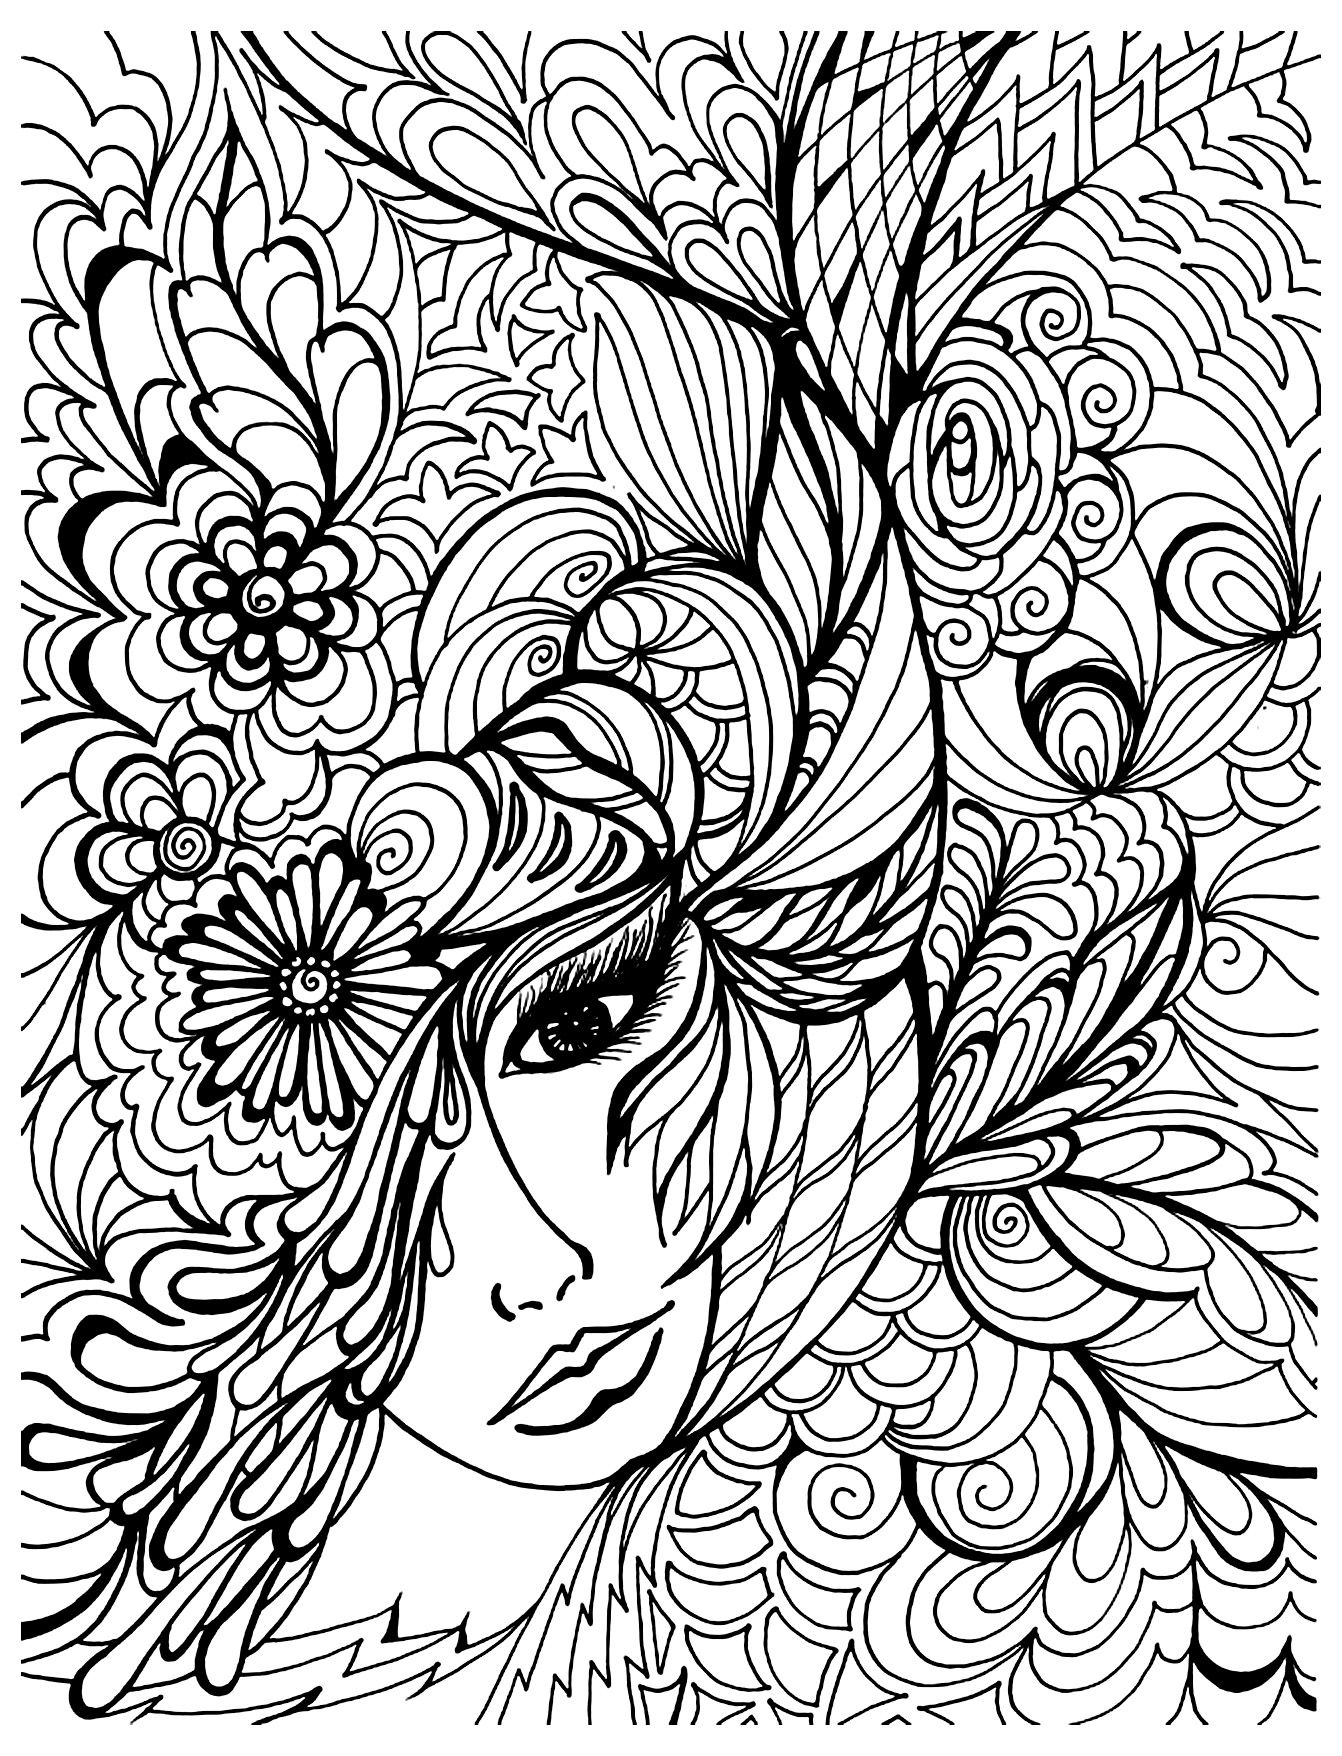 Disney zentangle coloring pages - Find This Pin And More On Adult Coloring Pages